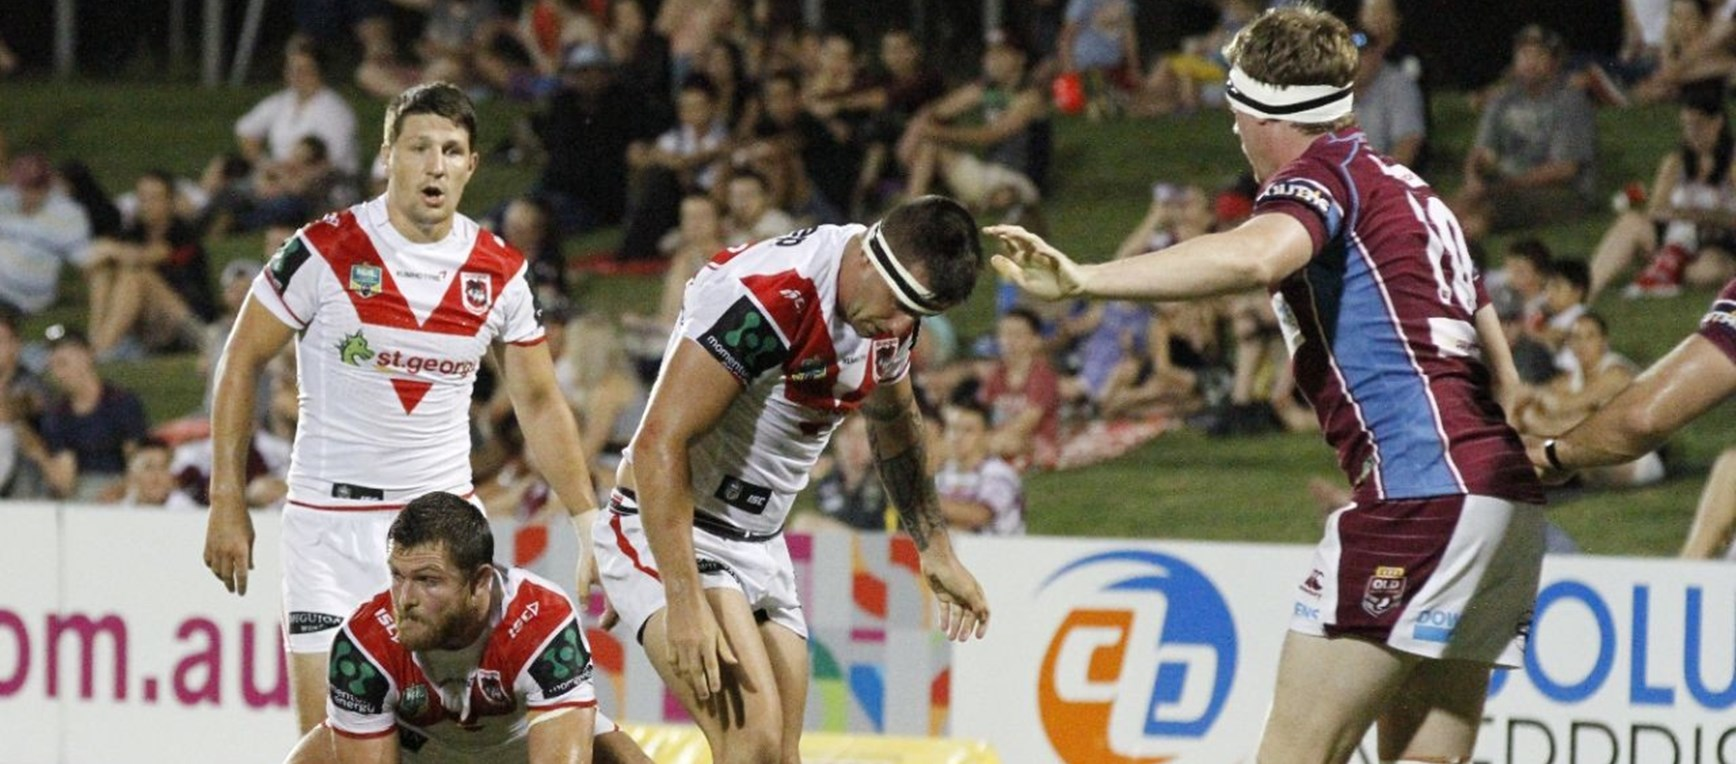 Gallery: Trial v Mackay Cutters